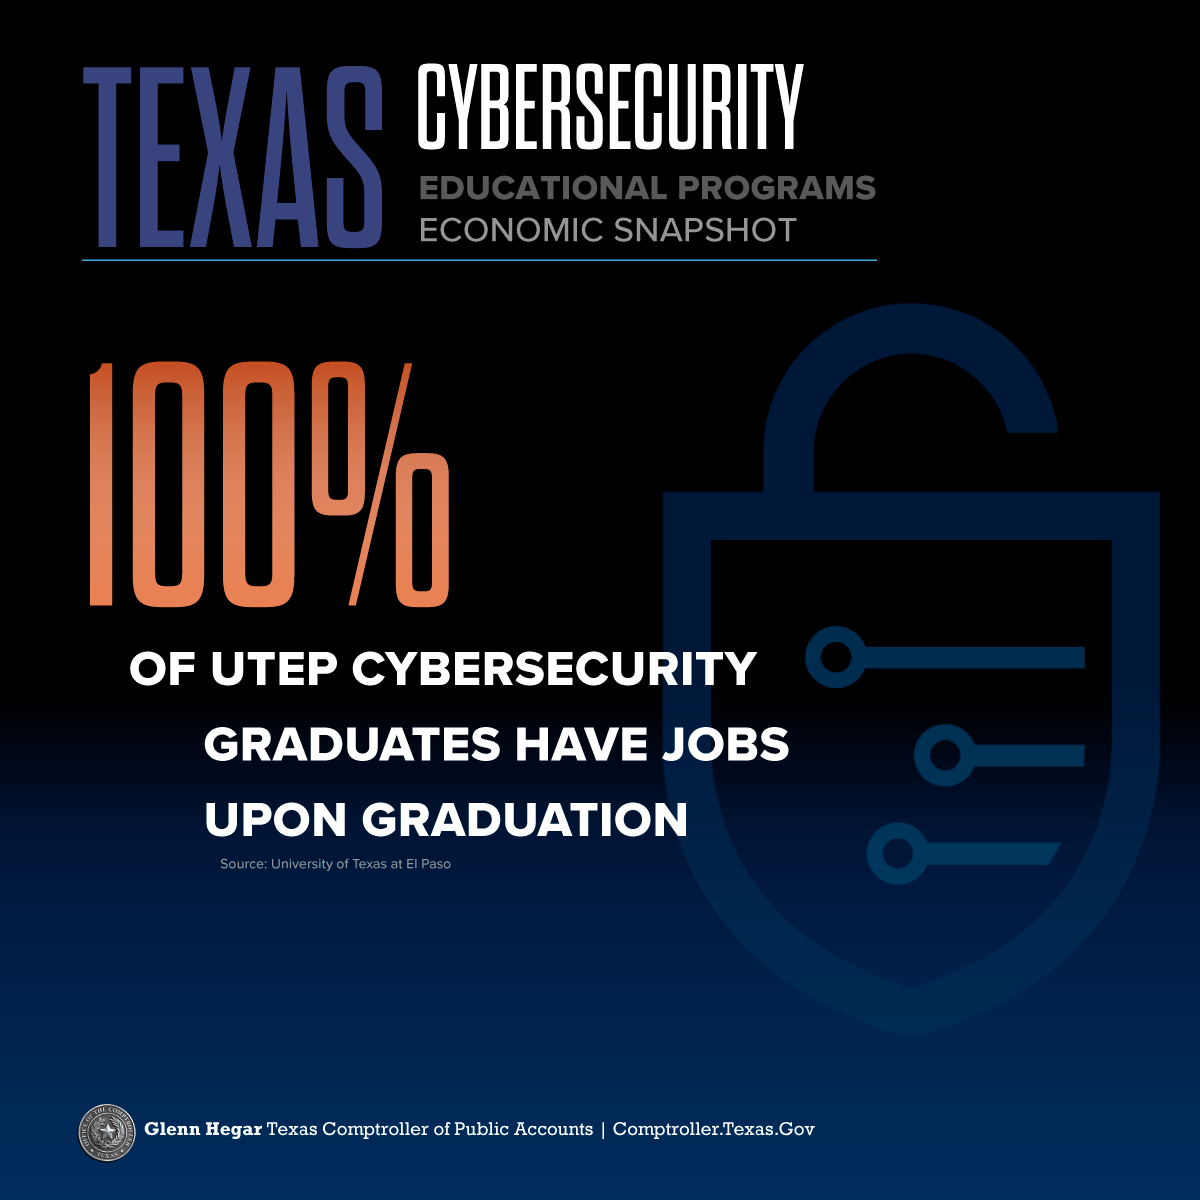 Texas Cybersecurity Educational Programs Economic Snapshot 100% of UTEP cybersecurity graduates have jobs upon graduation. Source: The University of Texas at El Paso